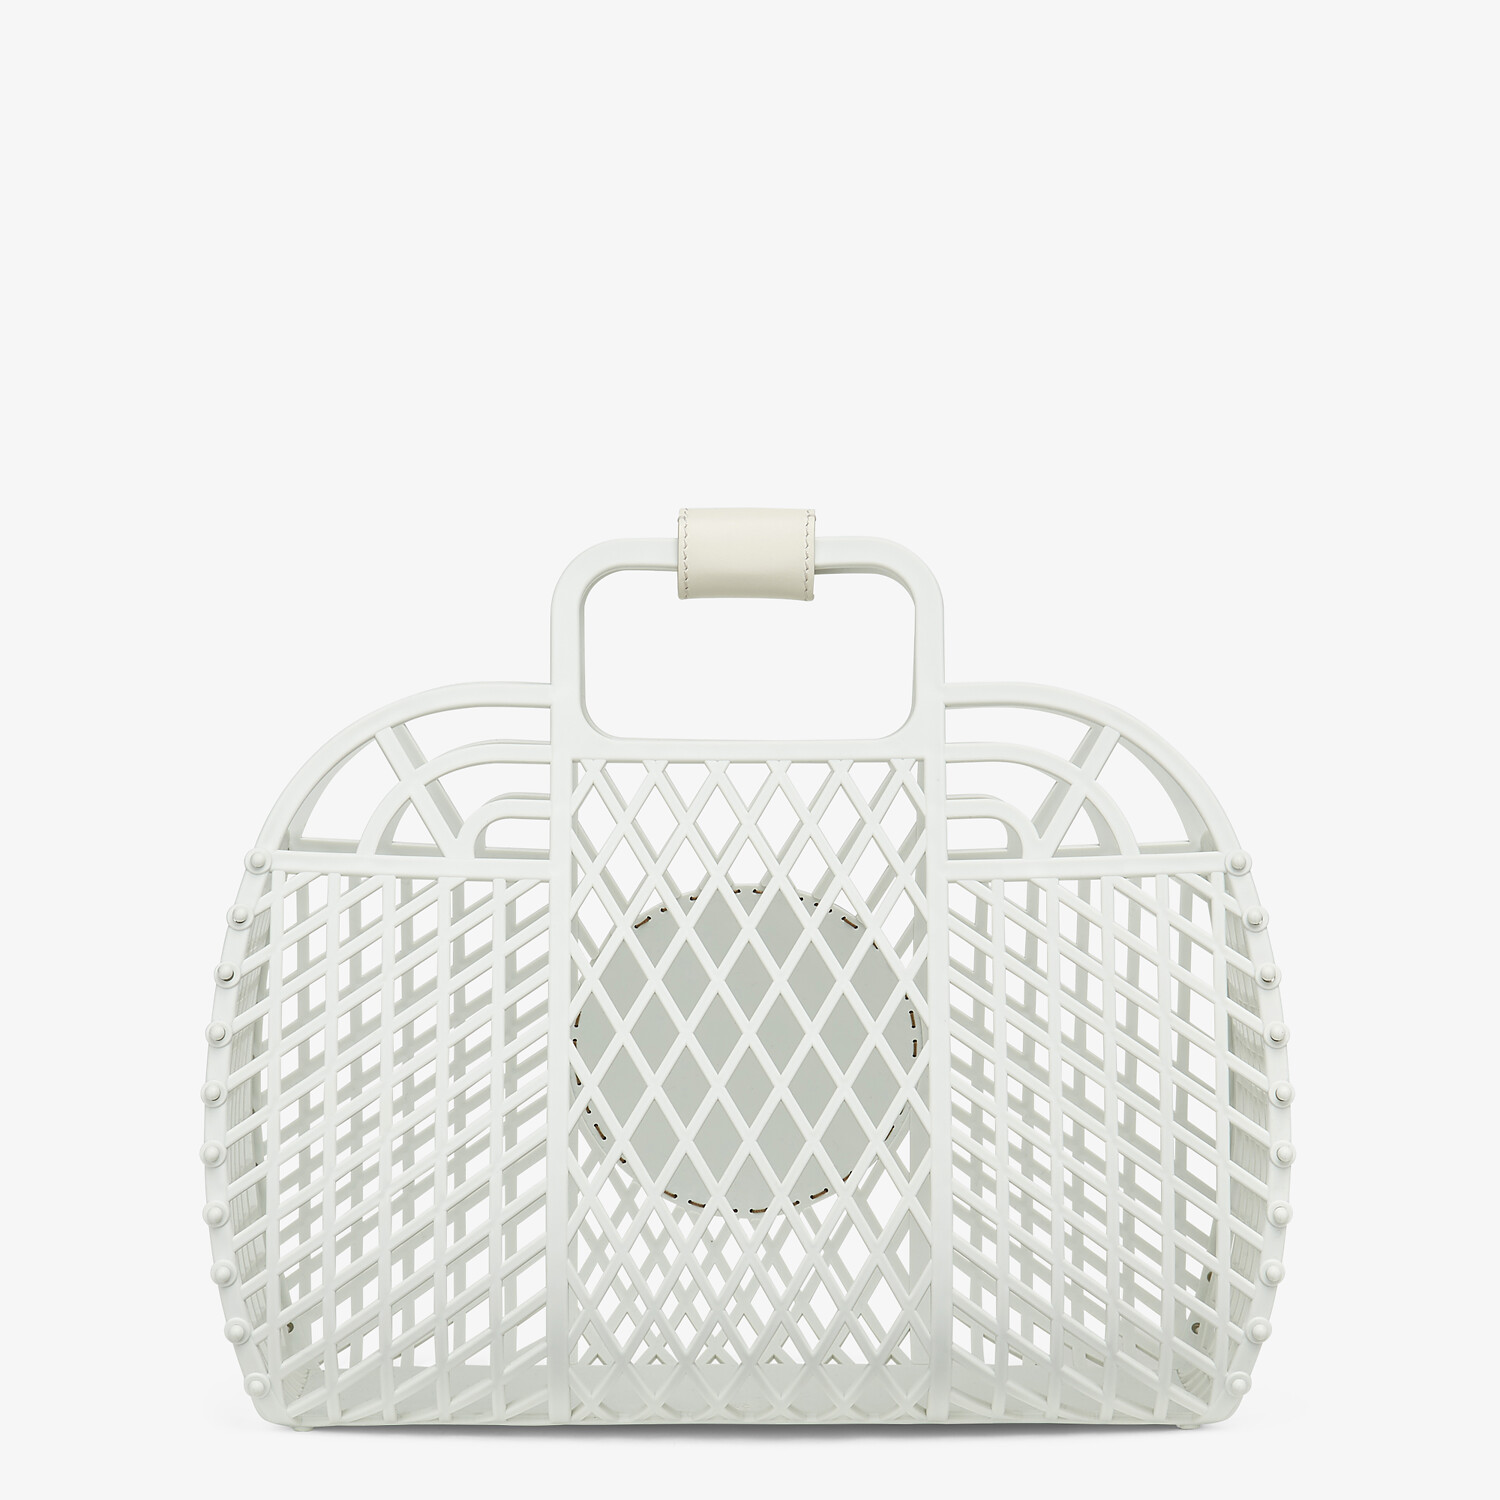 FENDI FENDI BASKET MEDIUM - White recycled plastic mini-bag - view 4 detail